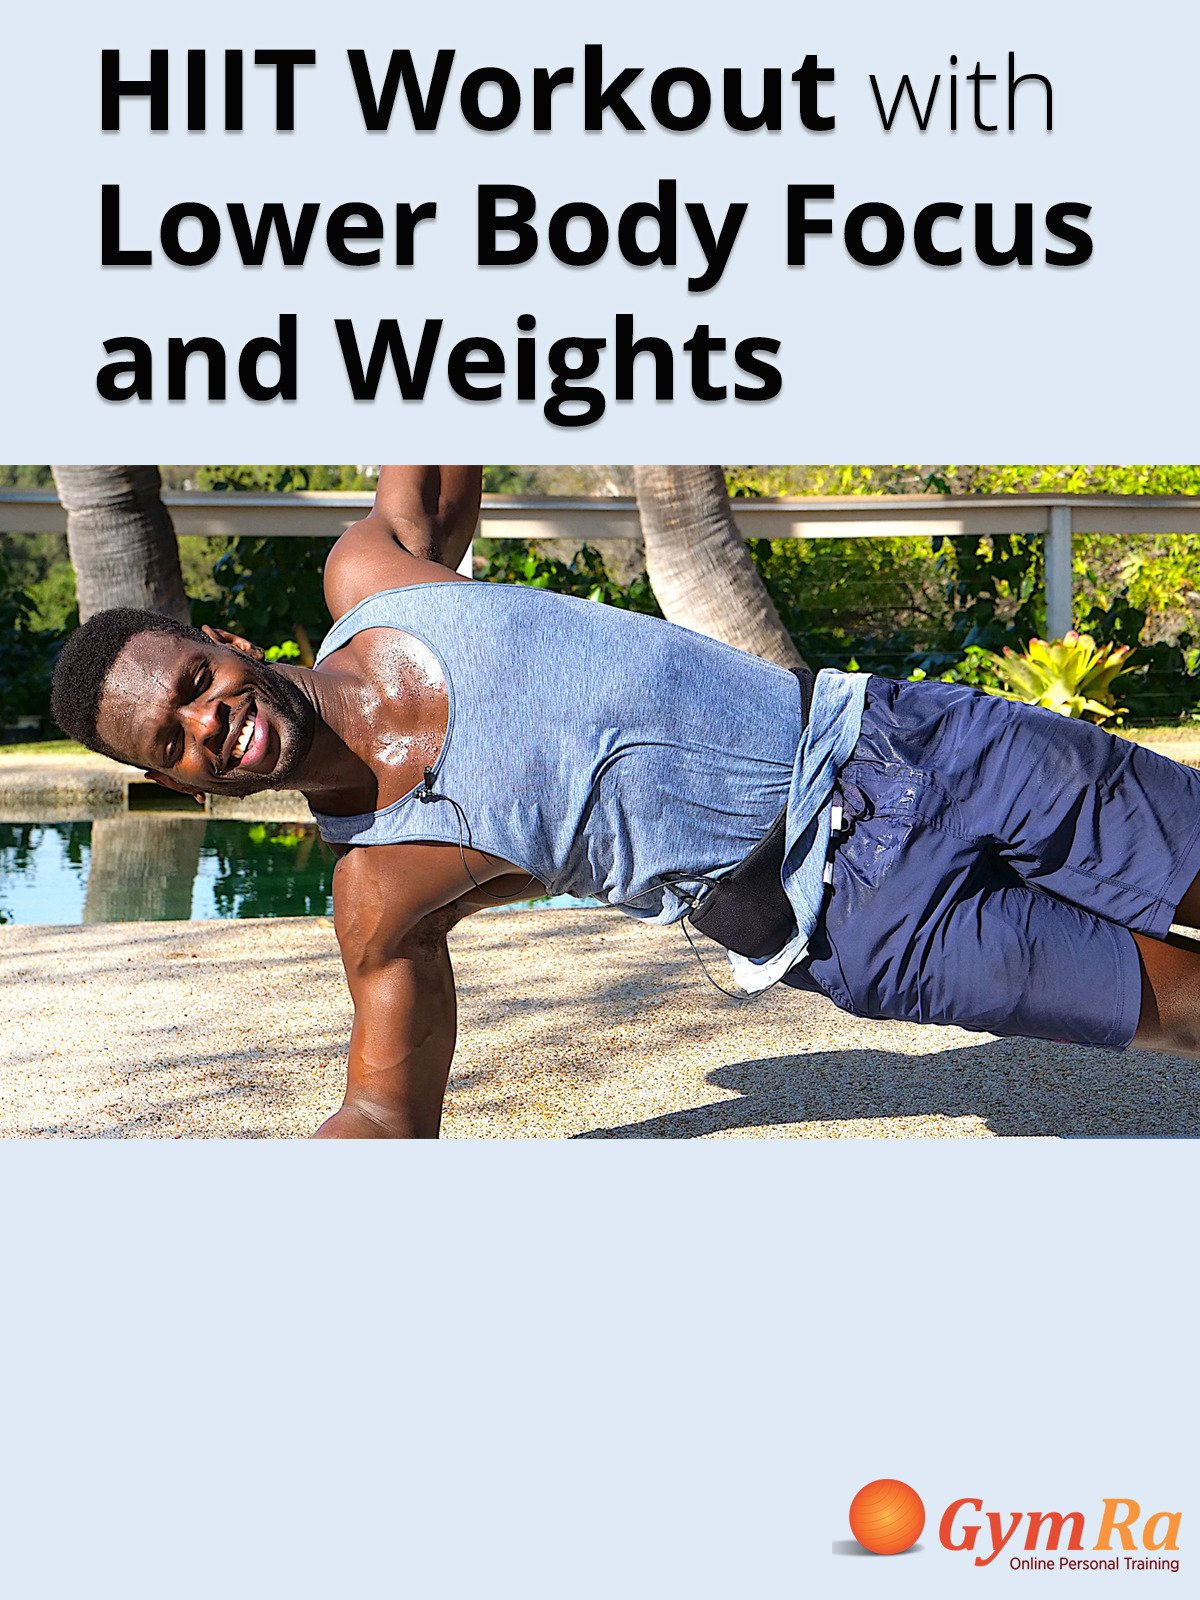 HIIT Workout with Lower Body Focus & Weights